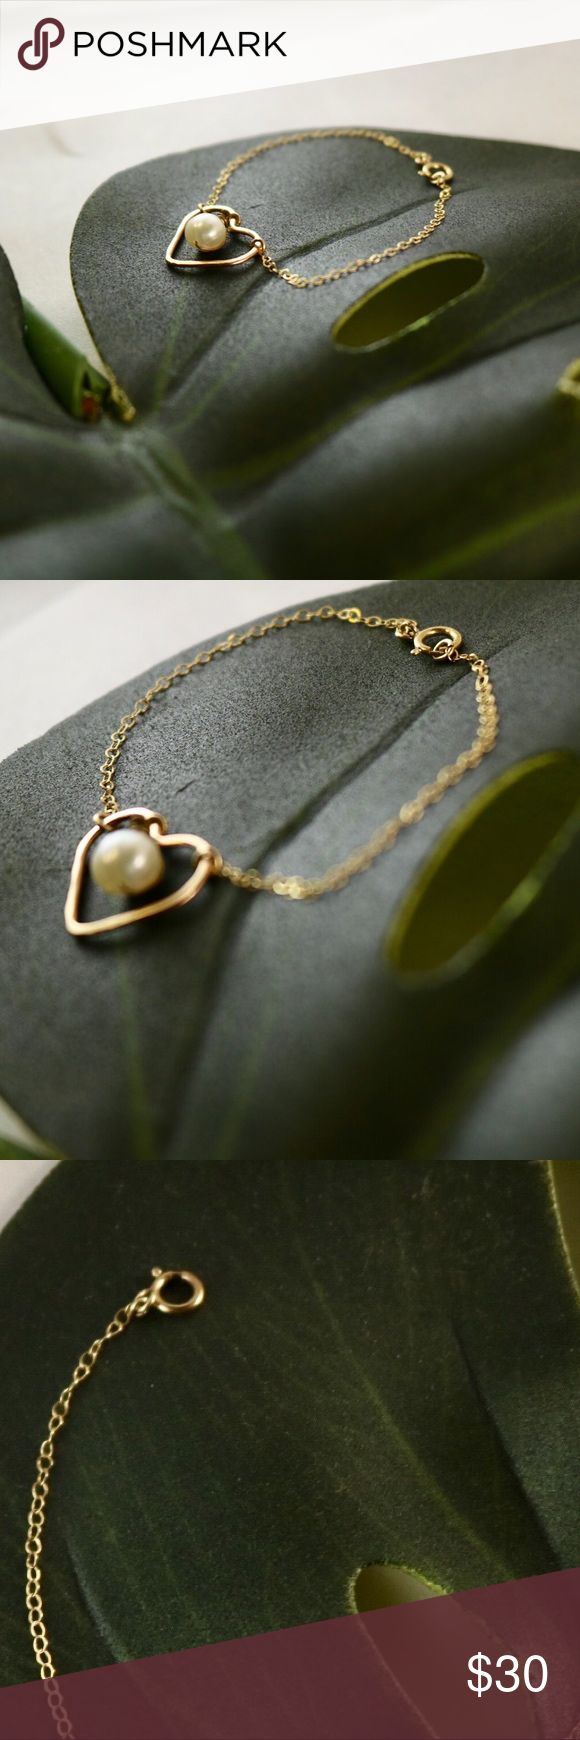 •Gold Heart Pearl Bracelet• Real Gold chain and welded heart with fresh water pearl that dangles from the center and lobster clasp. Jewelry Bracelets